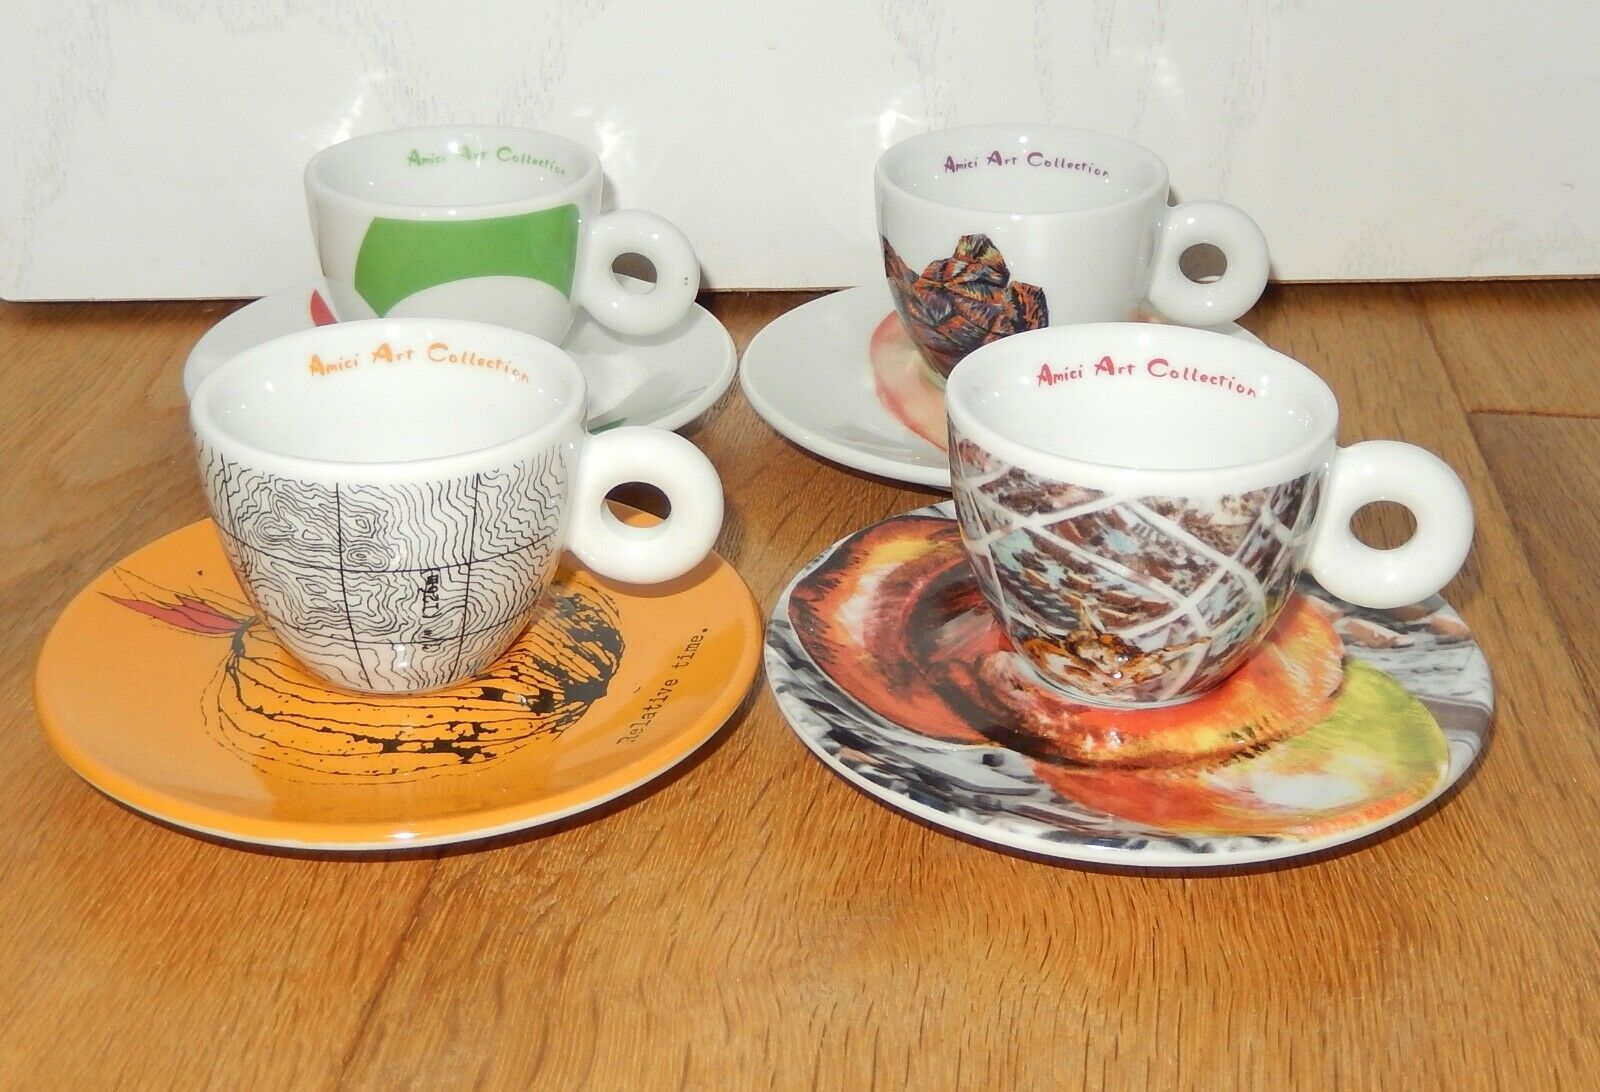 Amici collection ILLY COLLECTION Espresso Tasses Art Collection 2014 top